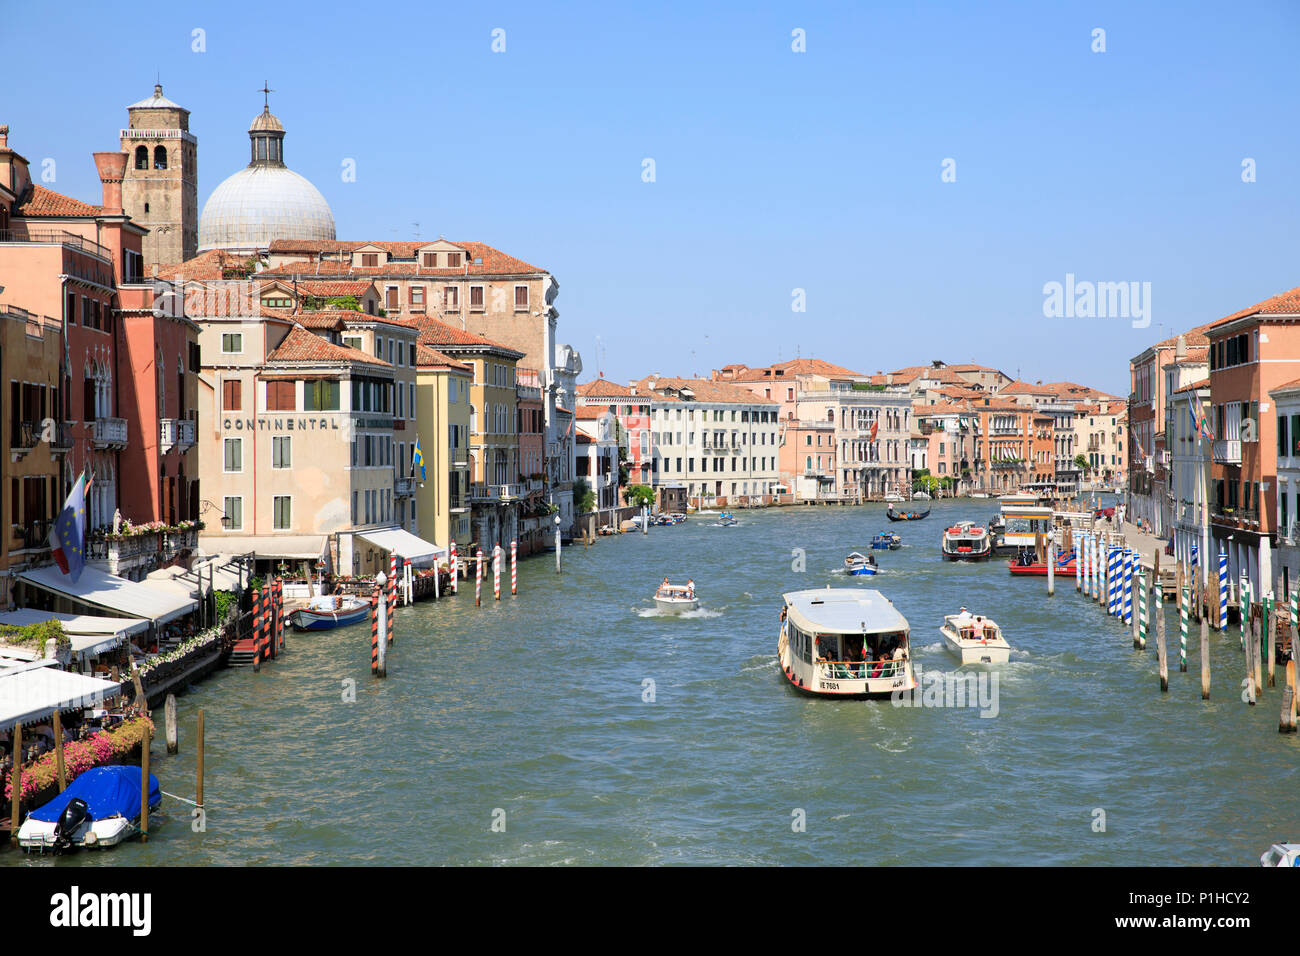 View from Ponte degli Scalzi looking down the Grand Canal in Venice, Italy. Stock Photo